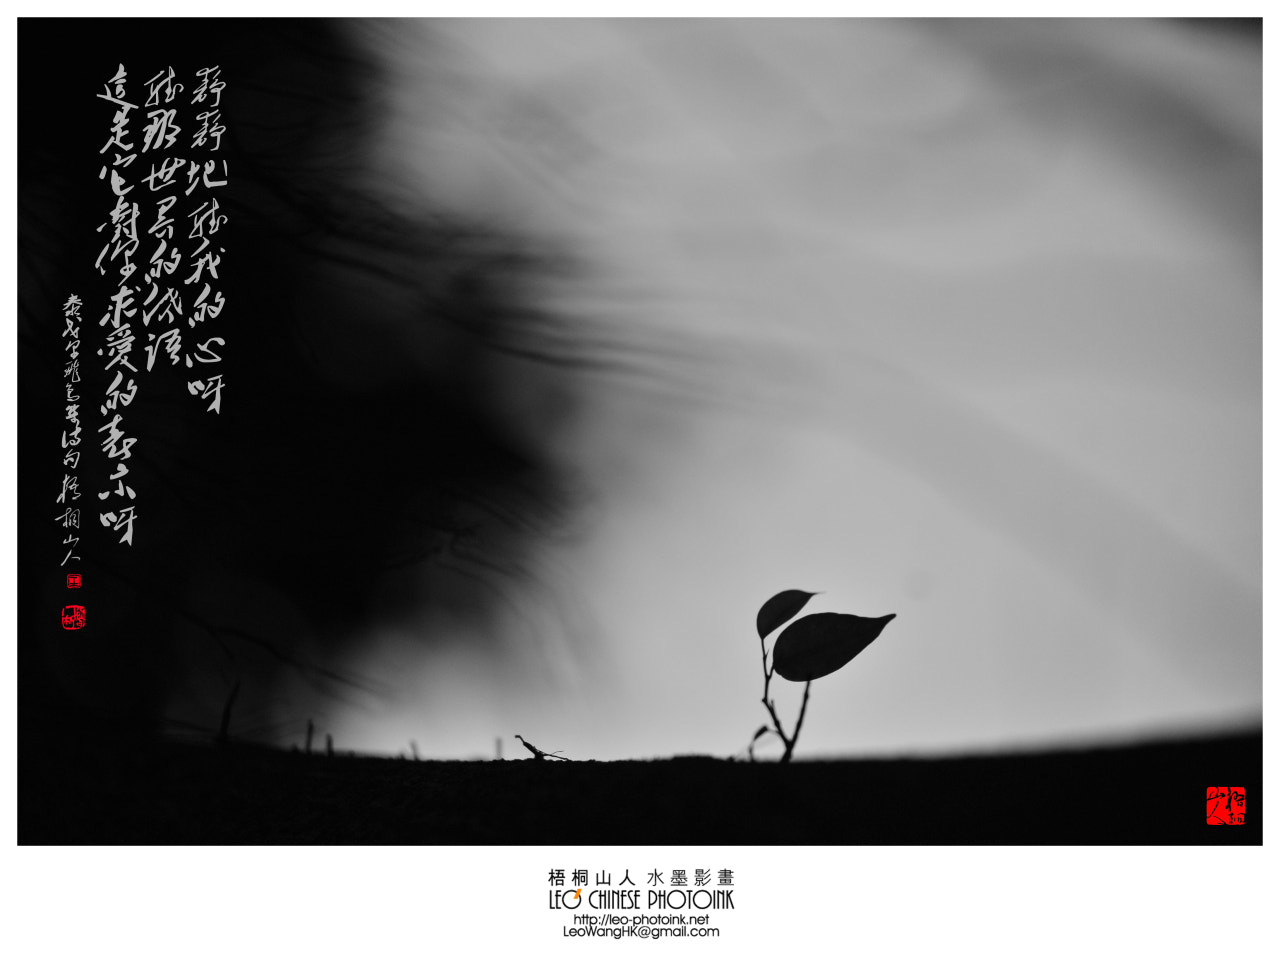 Photograph Whisper|風語20120720-1# by Leo Wang on 500px